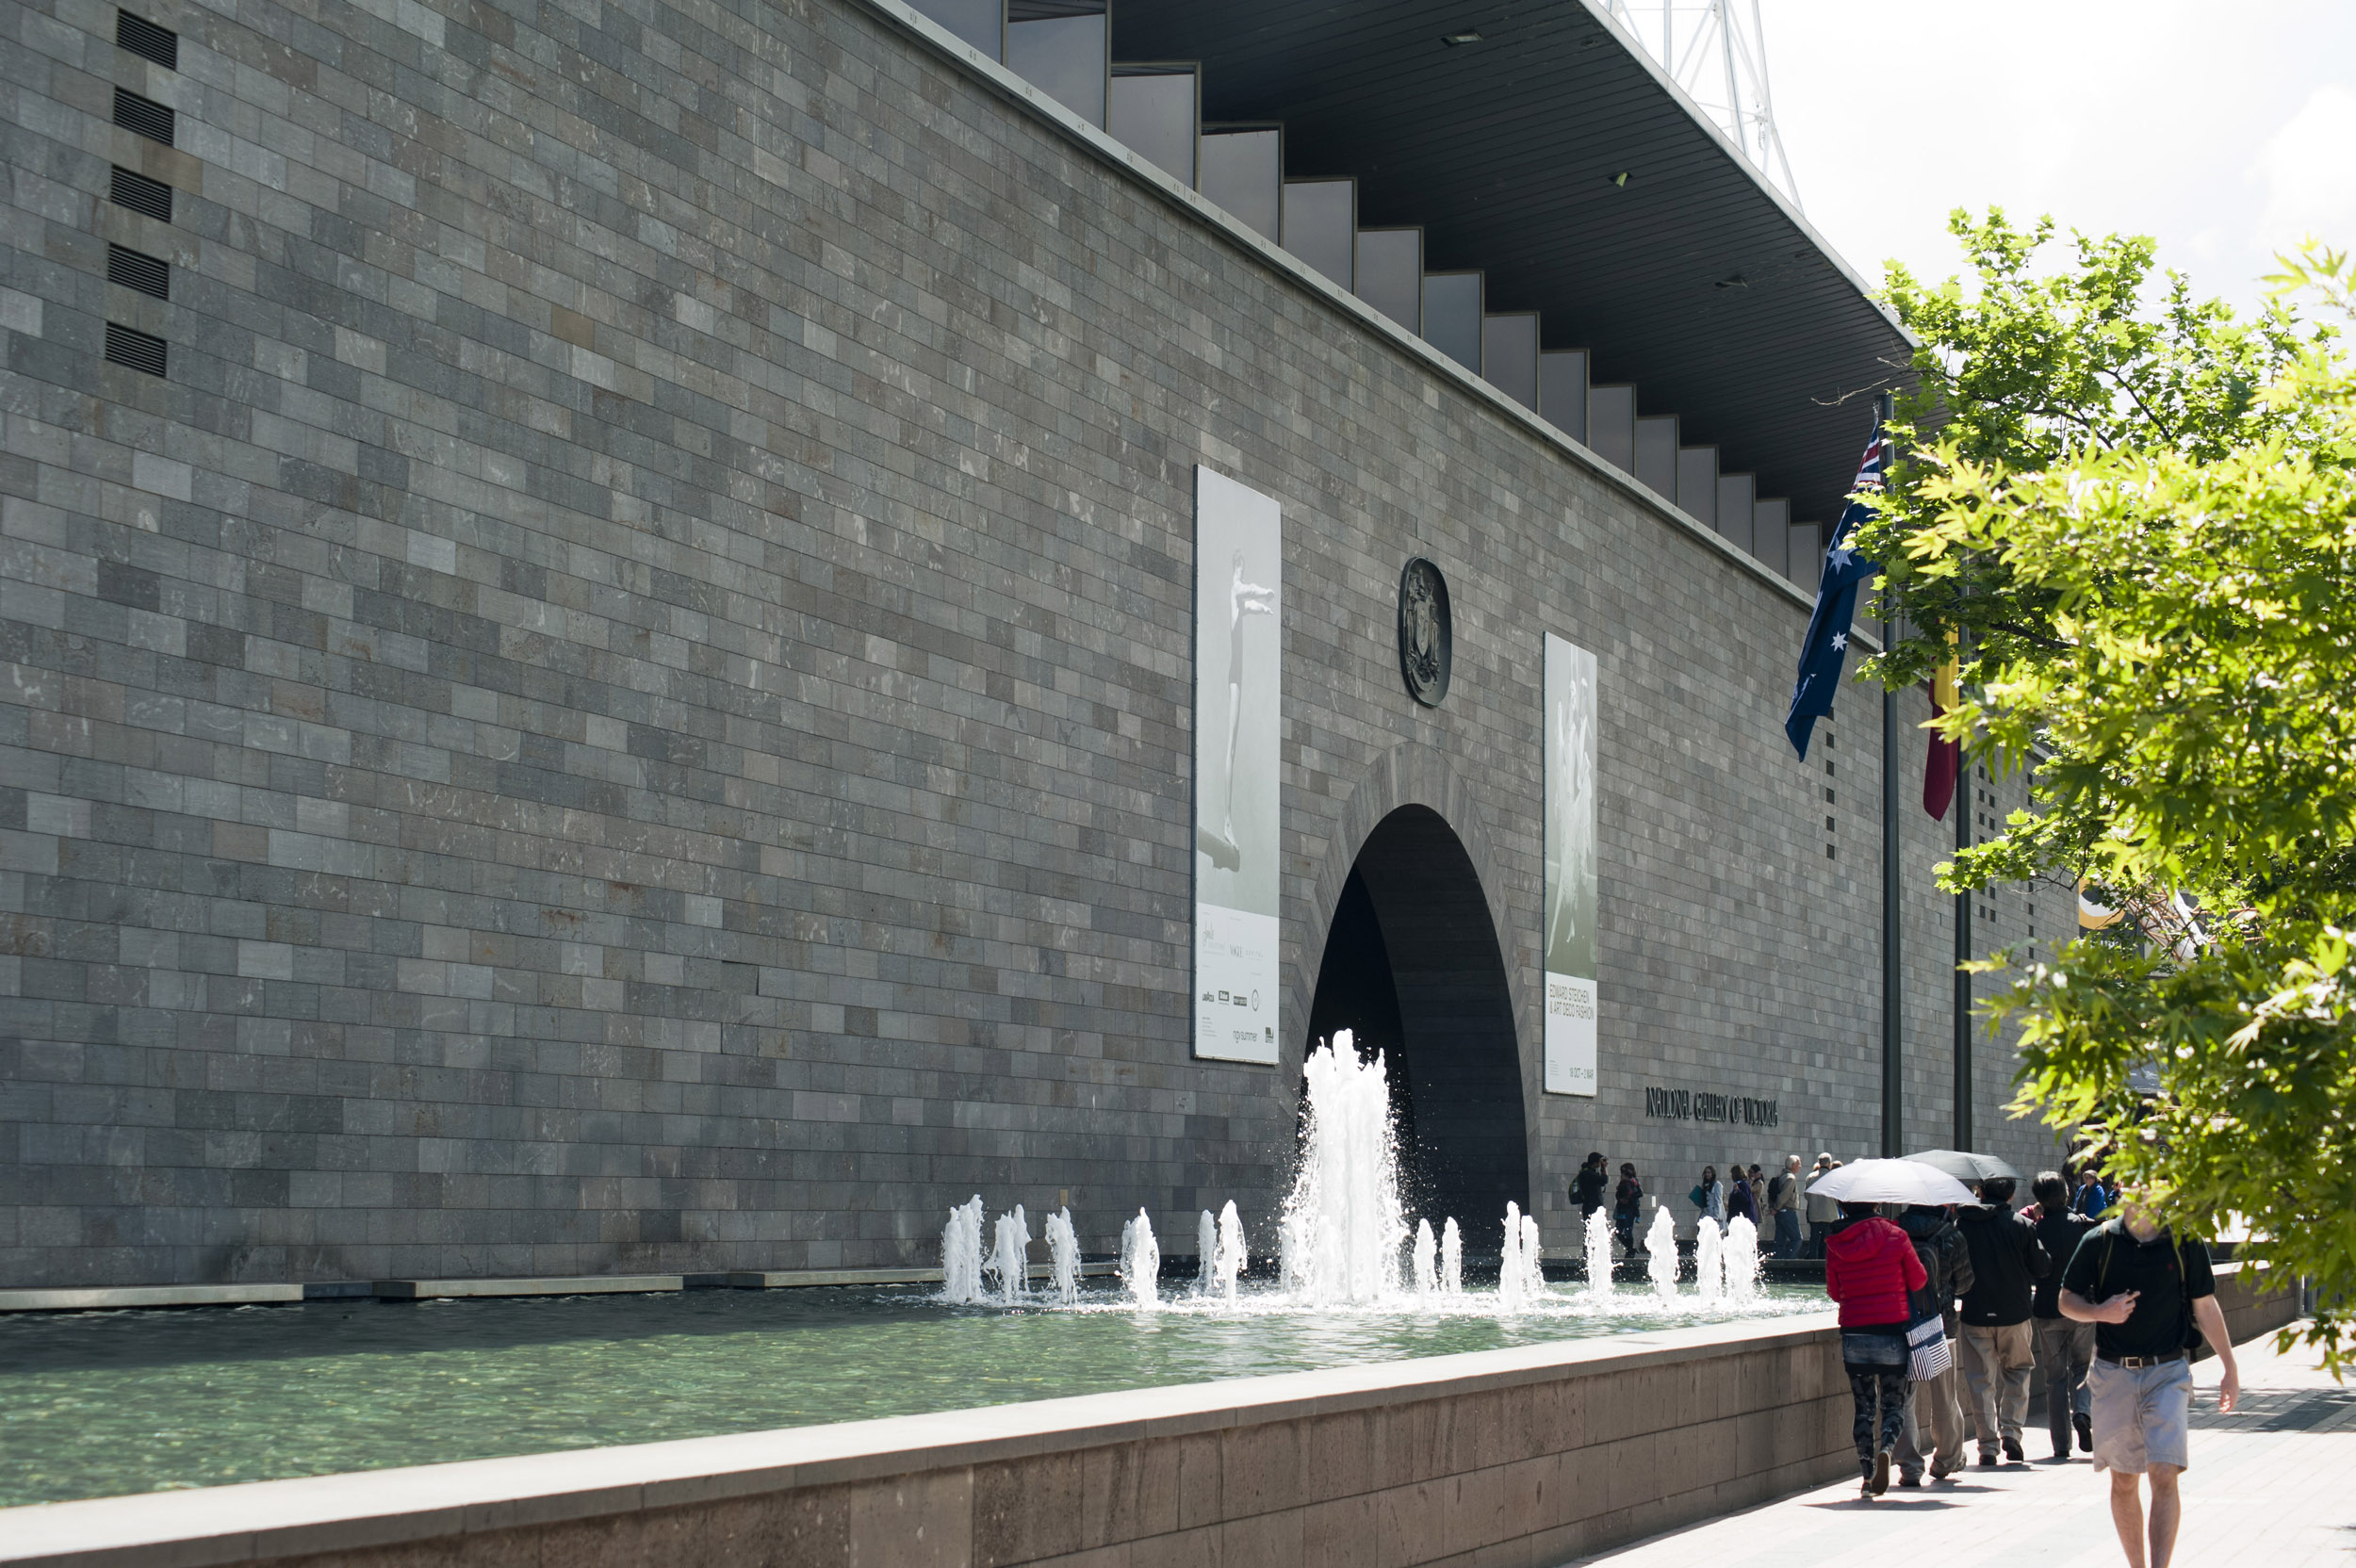 People outside the Melbourne National Gallery, Australia walking alongside the ornamental fountains and pond under umbrellas on a hot sunny day